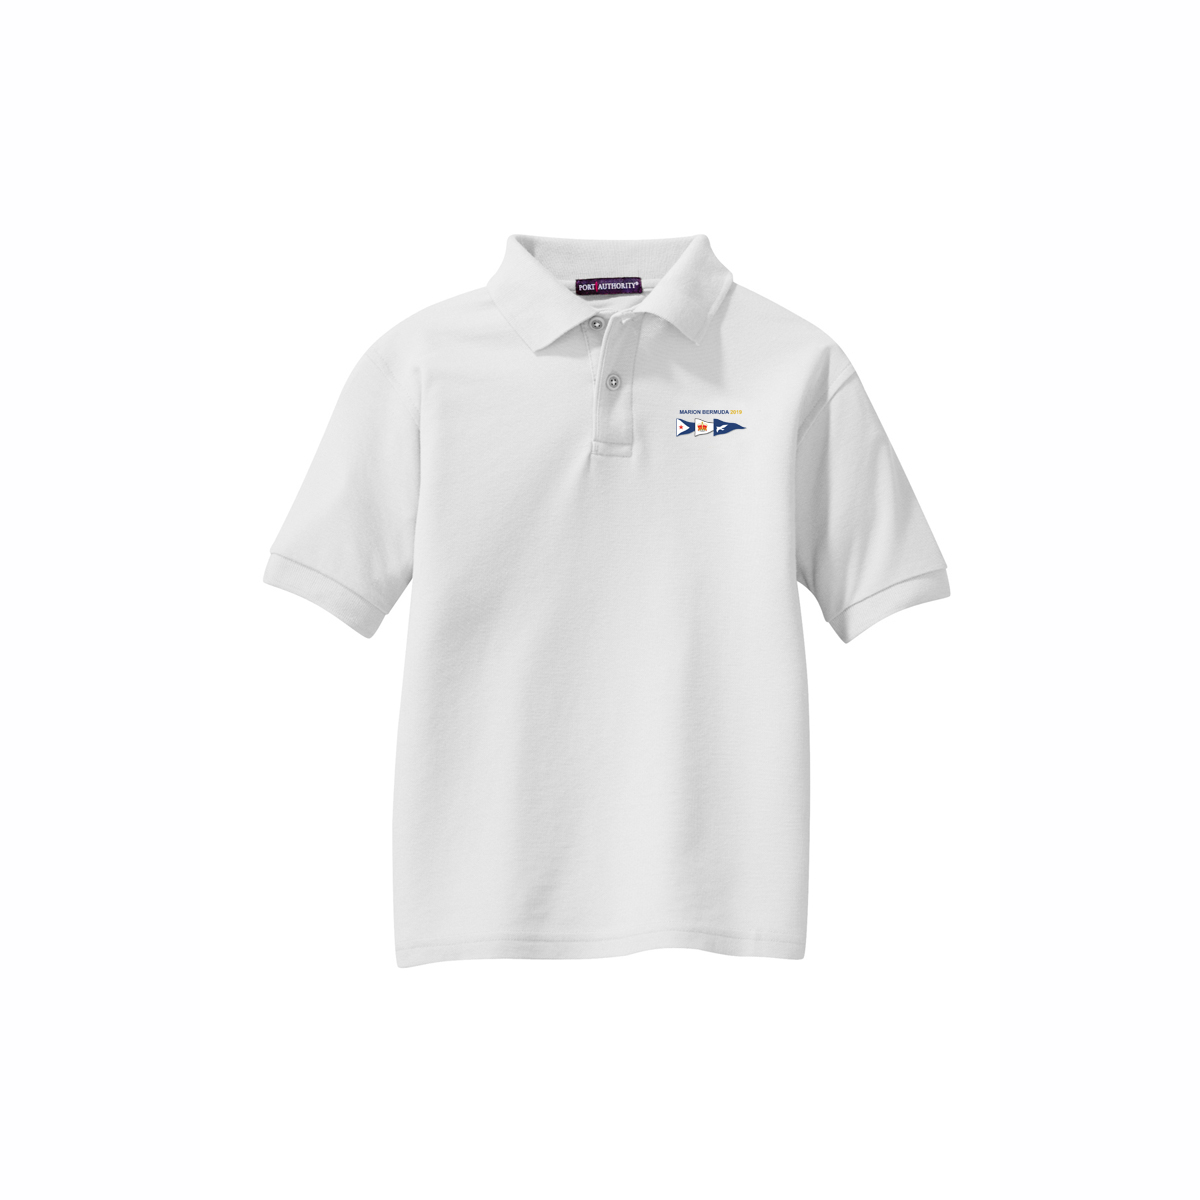 MBR  19 KIDS COTTON POLO